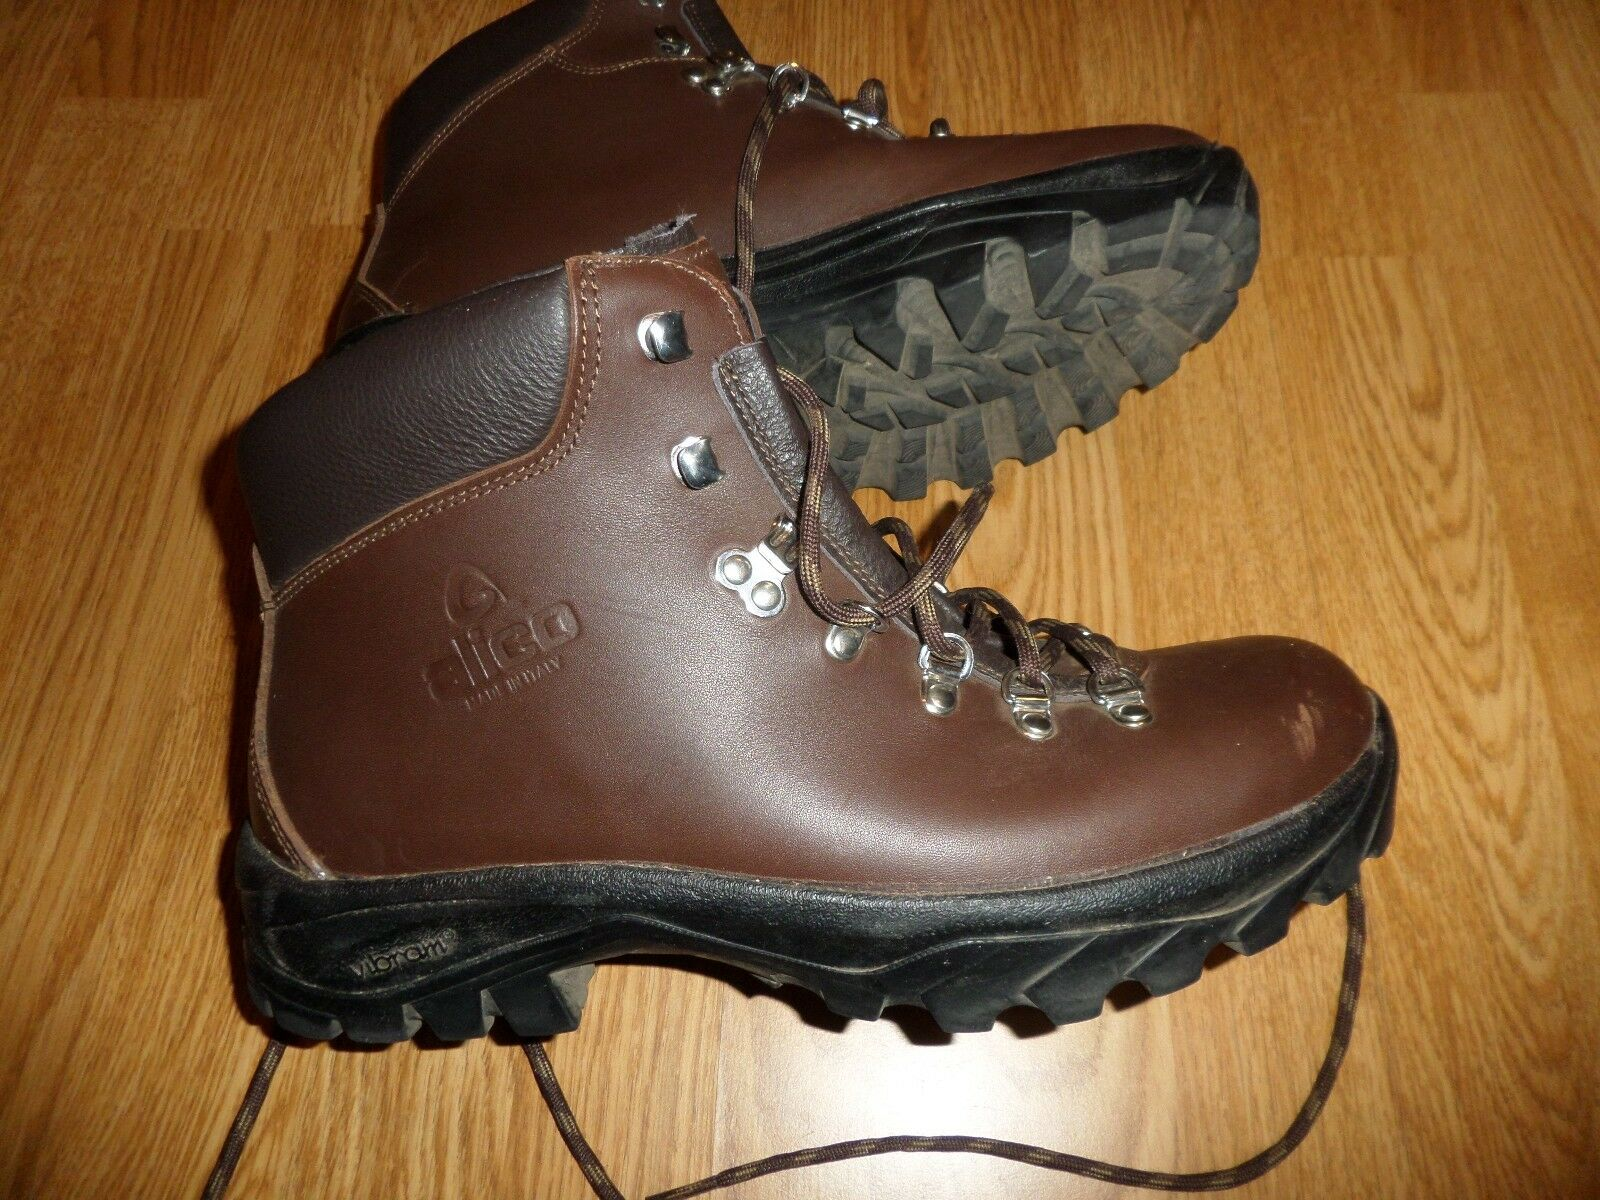 ALICO BACKCOUNTRY LEATHER HIKING BOOTS MEN'S 10.5 M RETAIL 280